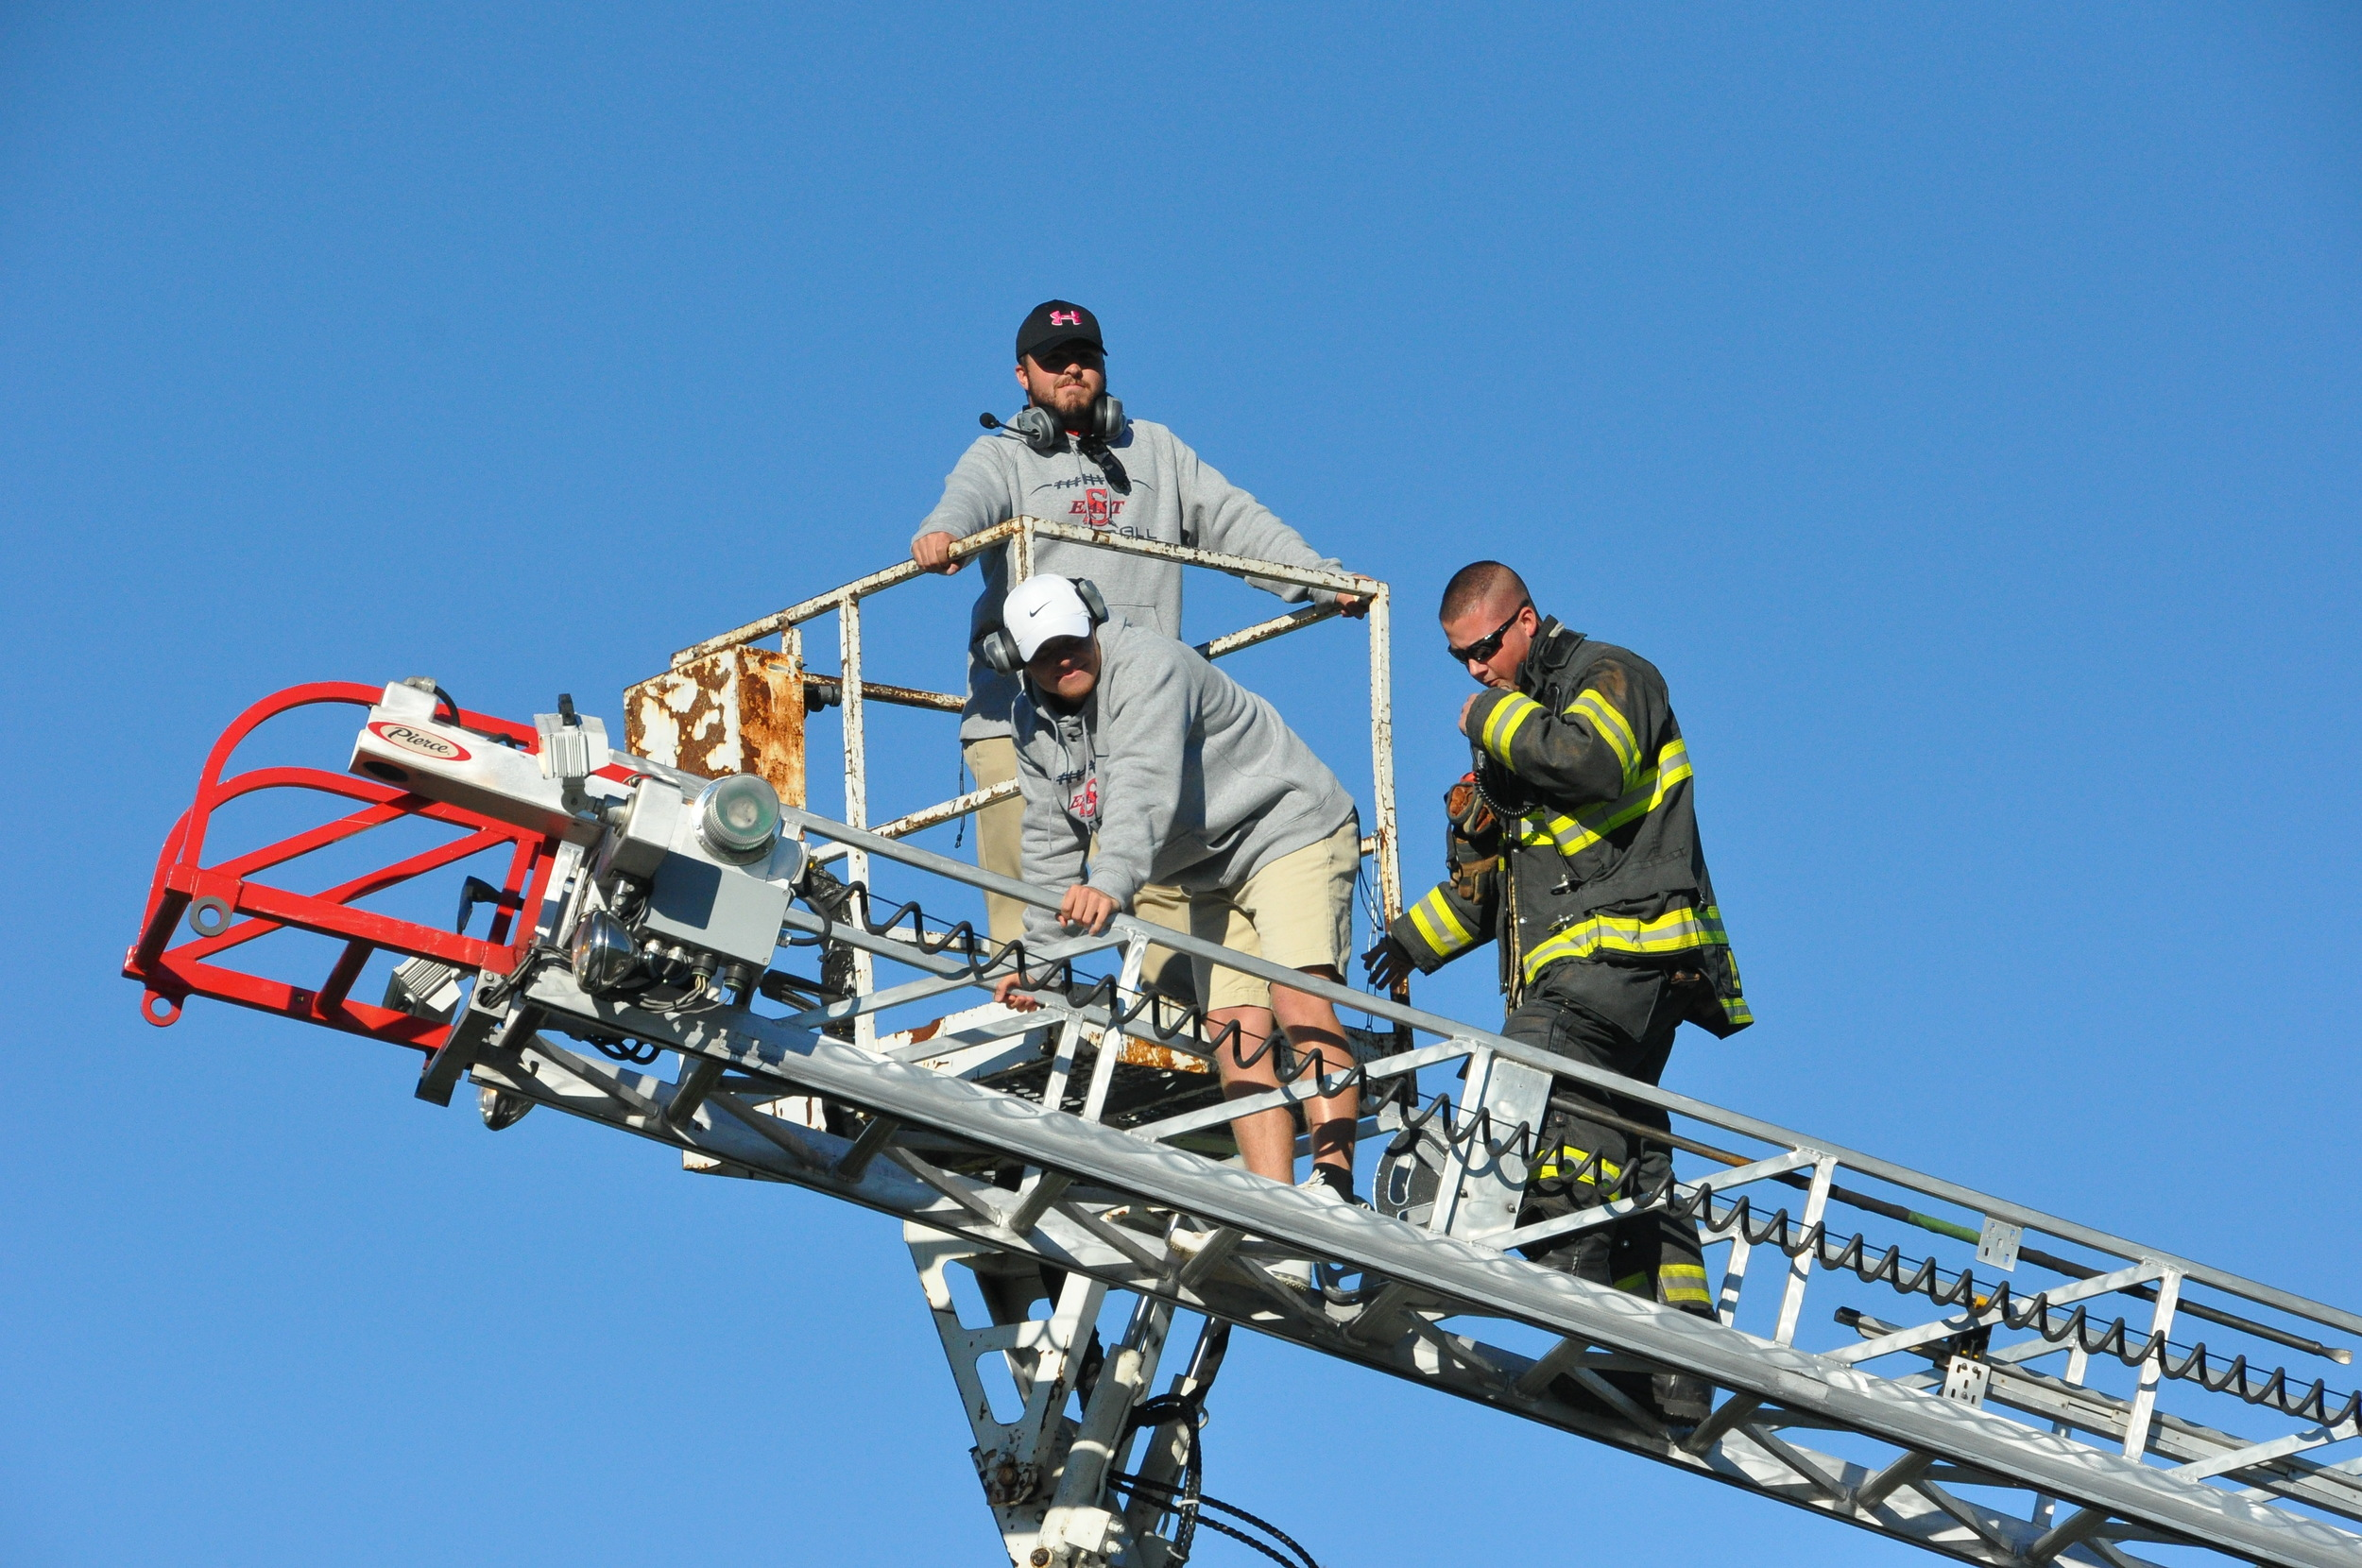 Dix Hills firefighter Matt Stio assists Tyler O'Neill, a Smithtown East football coach, after a bucket truck malfunctioned, leaving O'Neill and coach Tim Kopiske stranded 30 feet in the air Saturday afternoon after Half Hollow Hills High School East's homecoming game. (Photo by Steve Silverman)